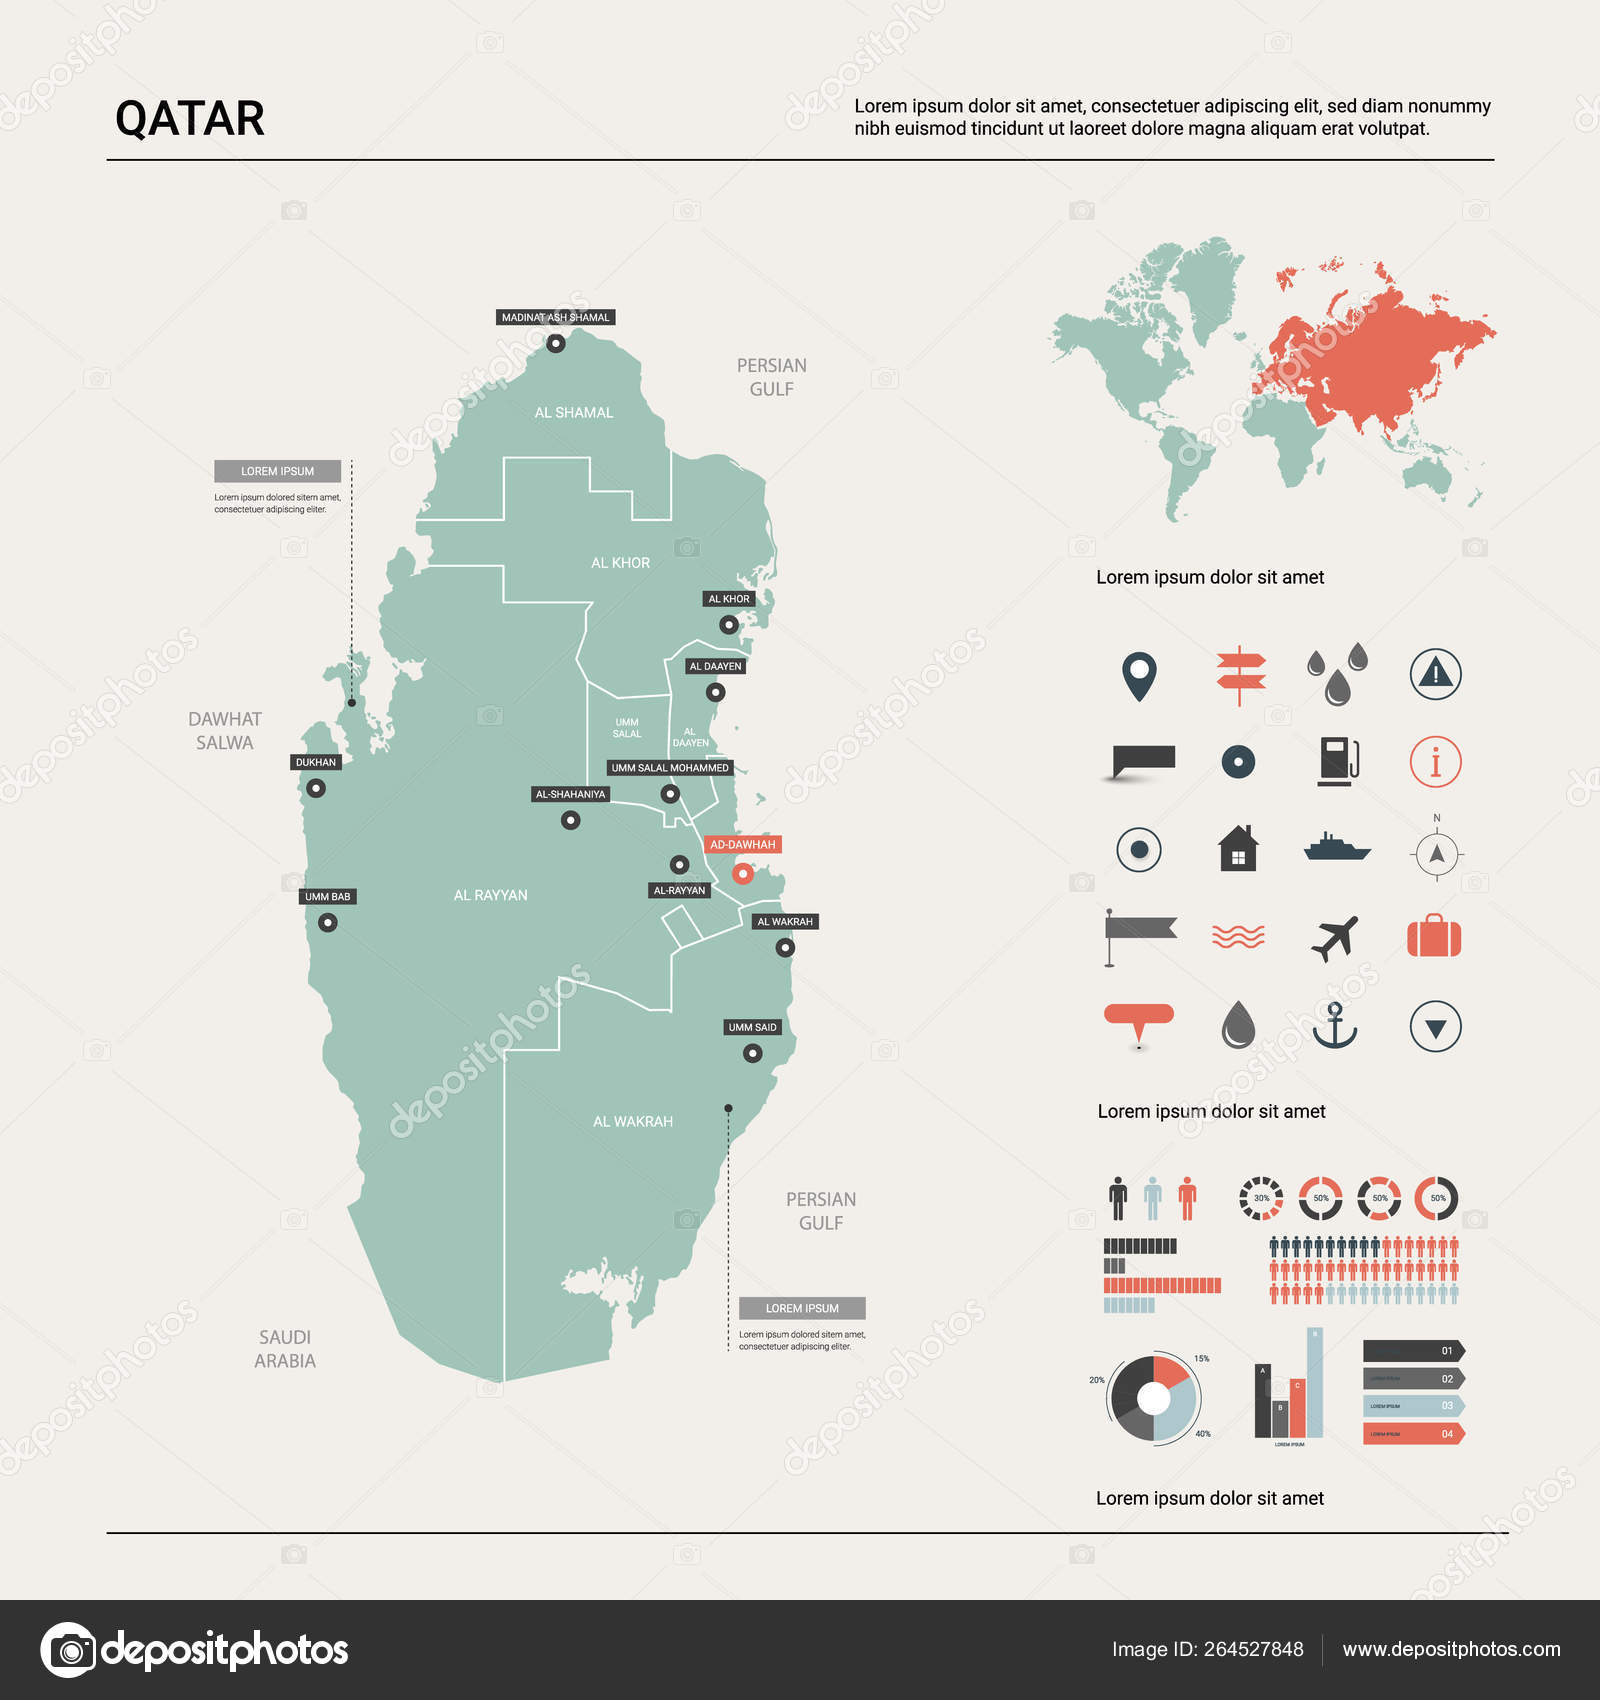 Vector map of Qatar. — Stock Vector © molokowall #264527848 on nigeria in the world map, albania in the world map, paraguay in the world map, sweden in the world map, fiji in the world map, saudi arabia in the world map, mongolia in the world map, georgia in the world map, slovenia in the world map, estonia in the world map, north sea in the world map, west indies in the world map, argelia in the world map, dominican republic in the world map, east asia in the world map, abu dhabi in the world map, great britain in the world map, arctic ocean in the world map, united kingdom in the world map, all countries in the world map,